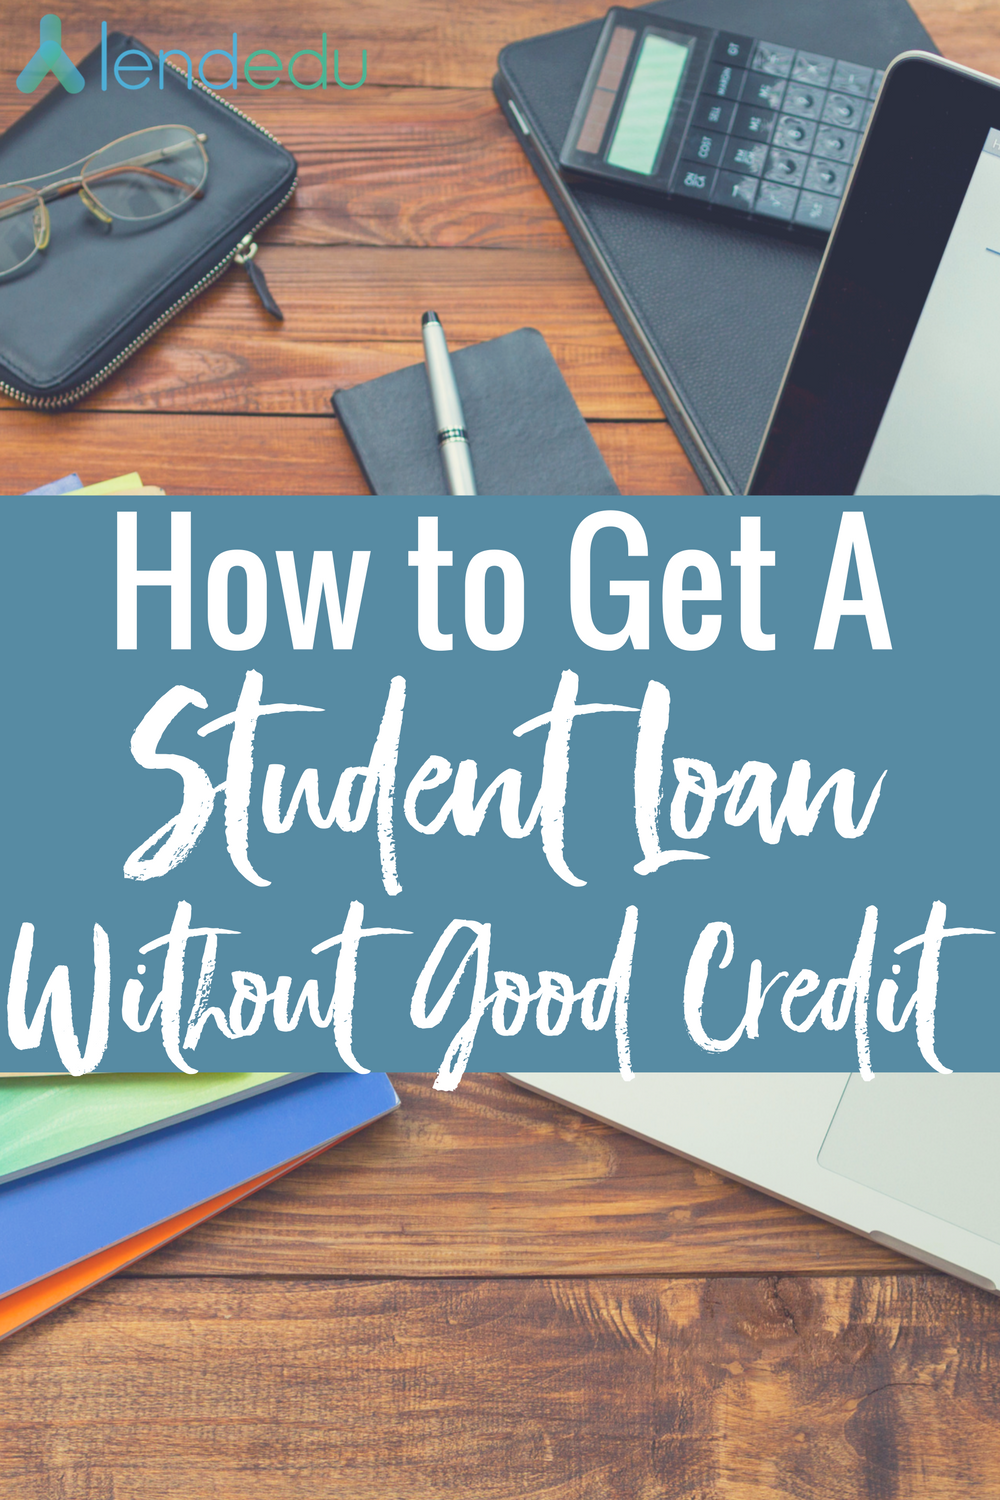 Is it possible to get $50,000 per year for college through loans?